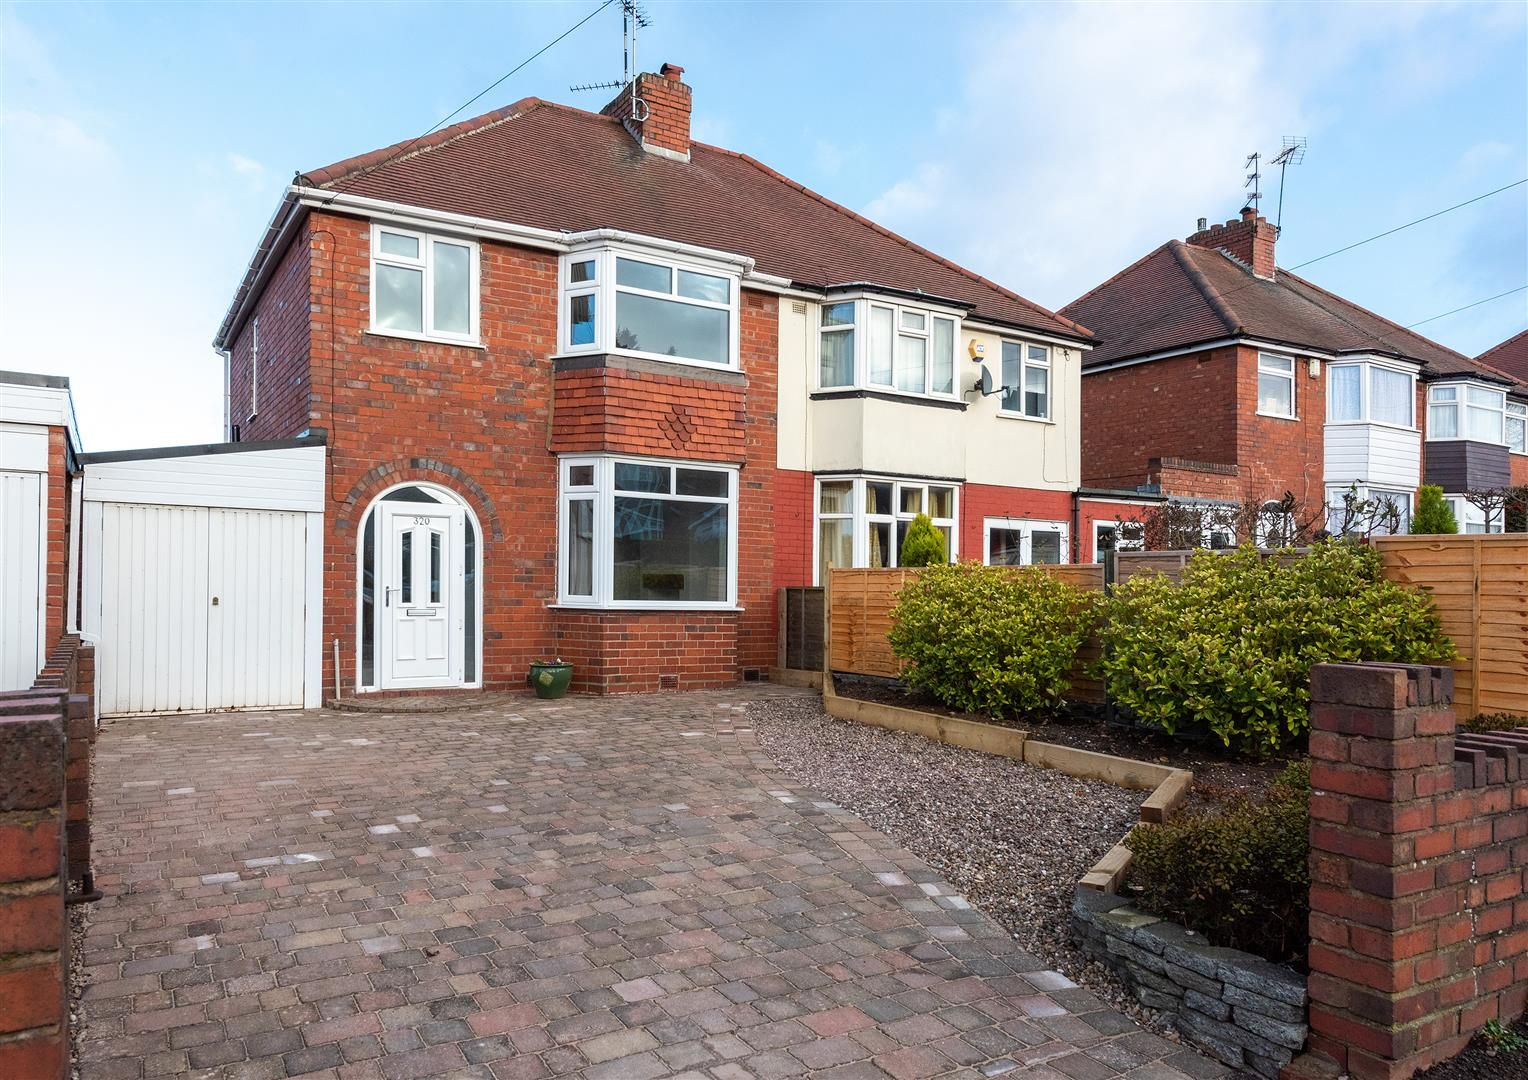 3 bed semi-detached for sale, B63